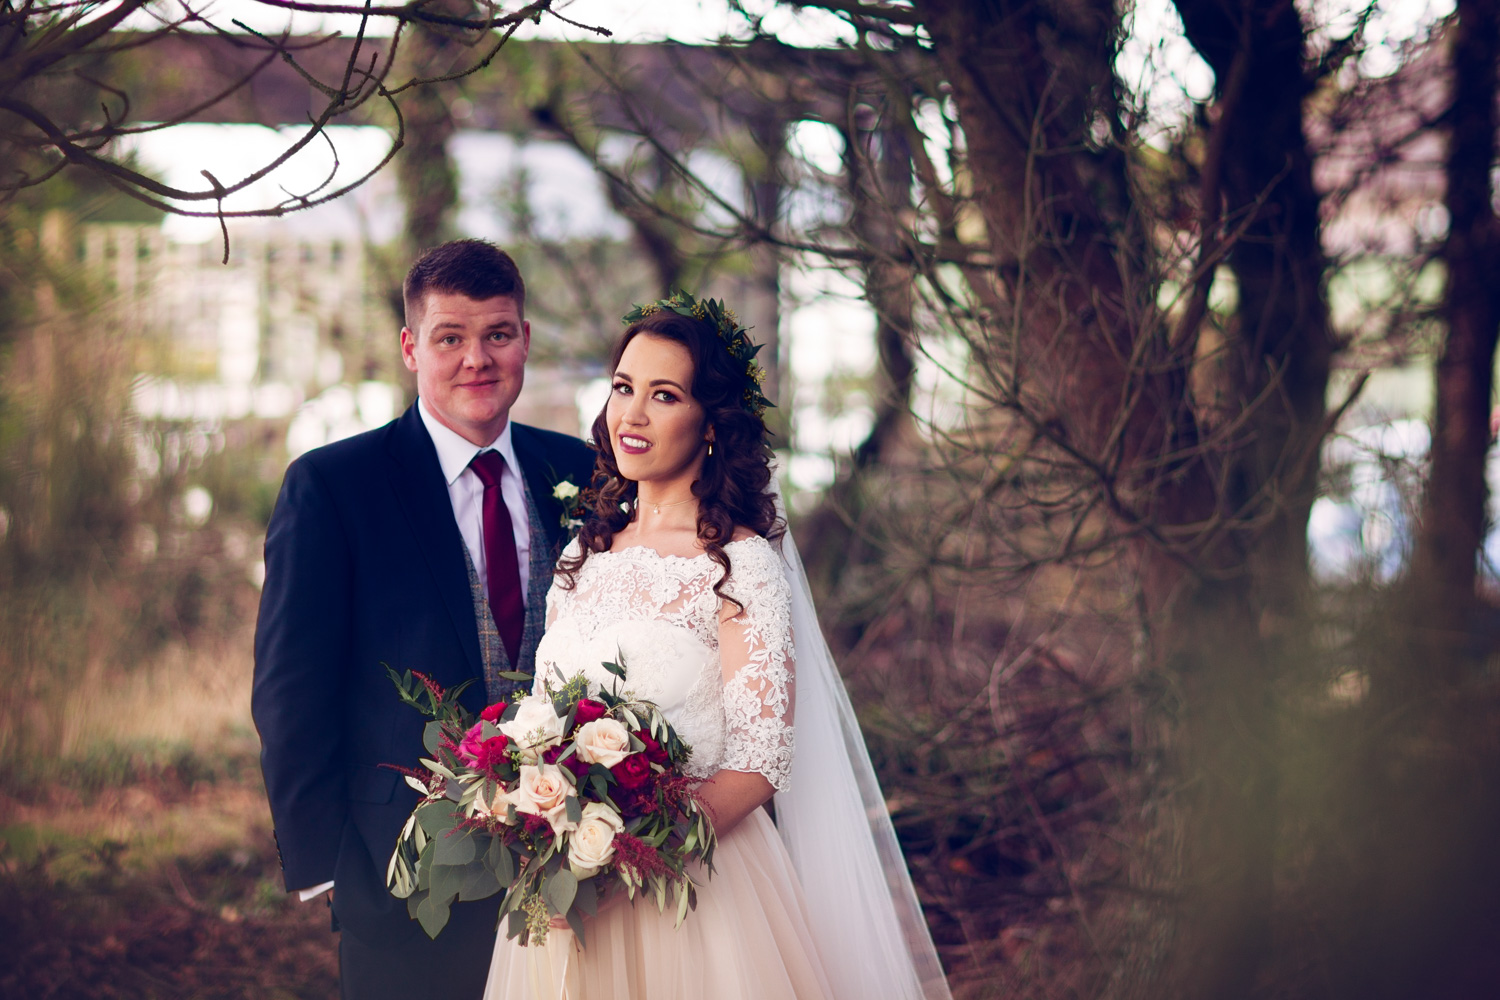 Mark_Barnes_wedding_photographer_Northern_Ireland_Wedding_photography_Orange_Tree_House_Greyabbey_Wedding_photography-42.jpg